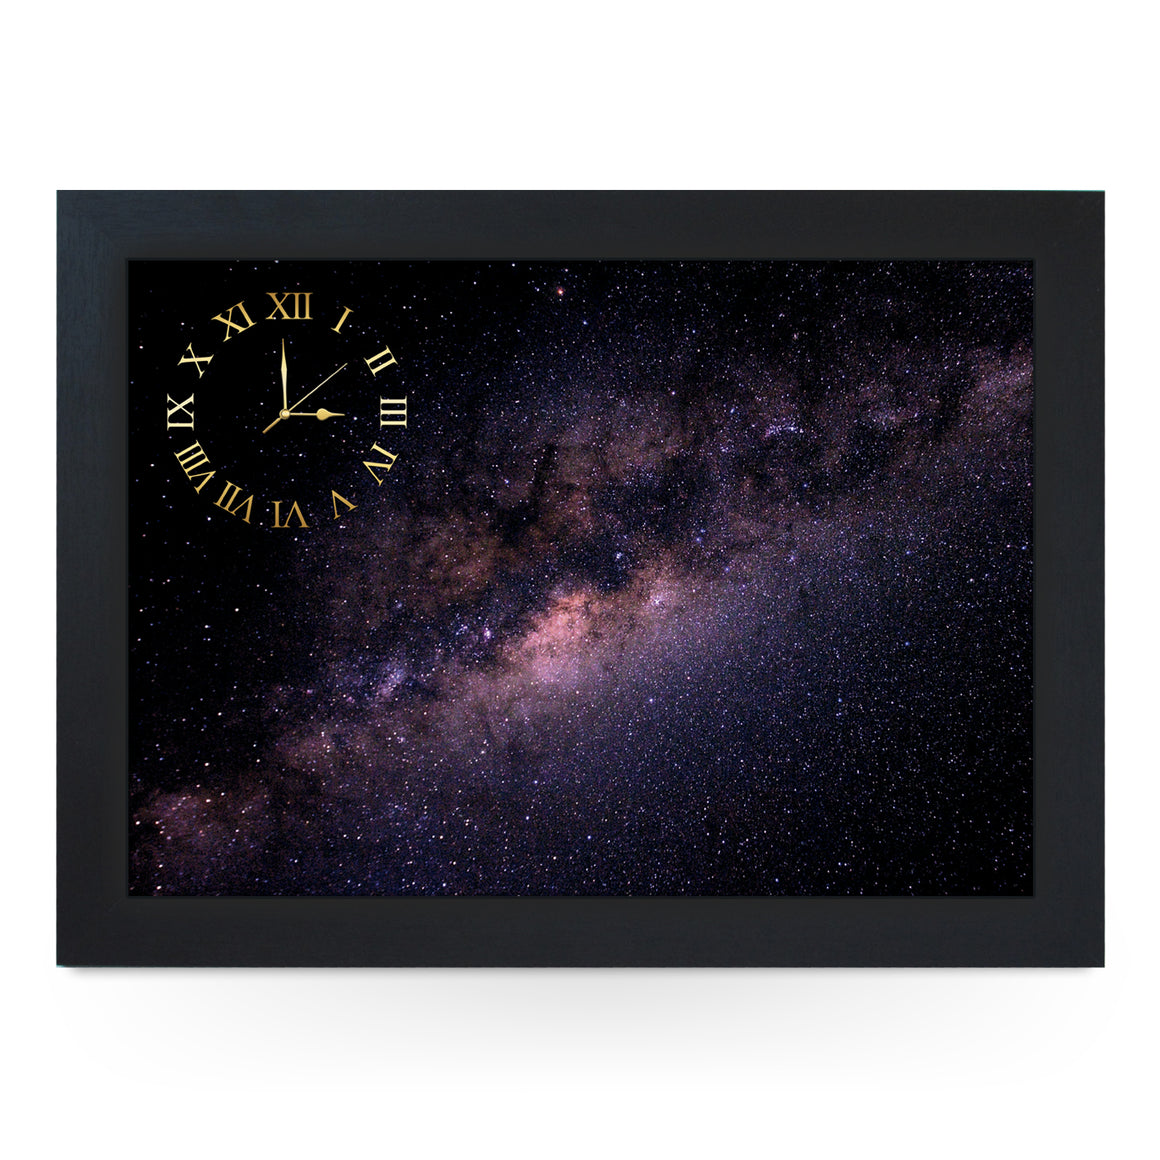 Wooden Picture Frame Clock. CL057 Milky Way Galaxy